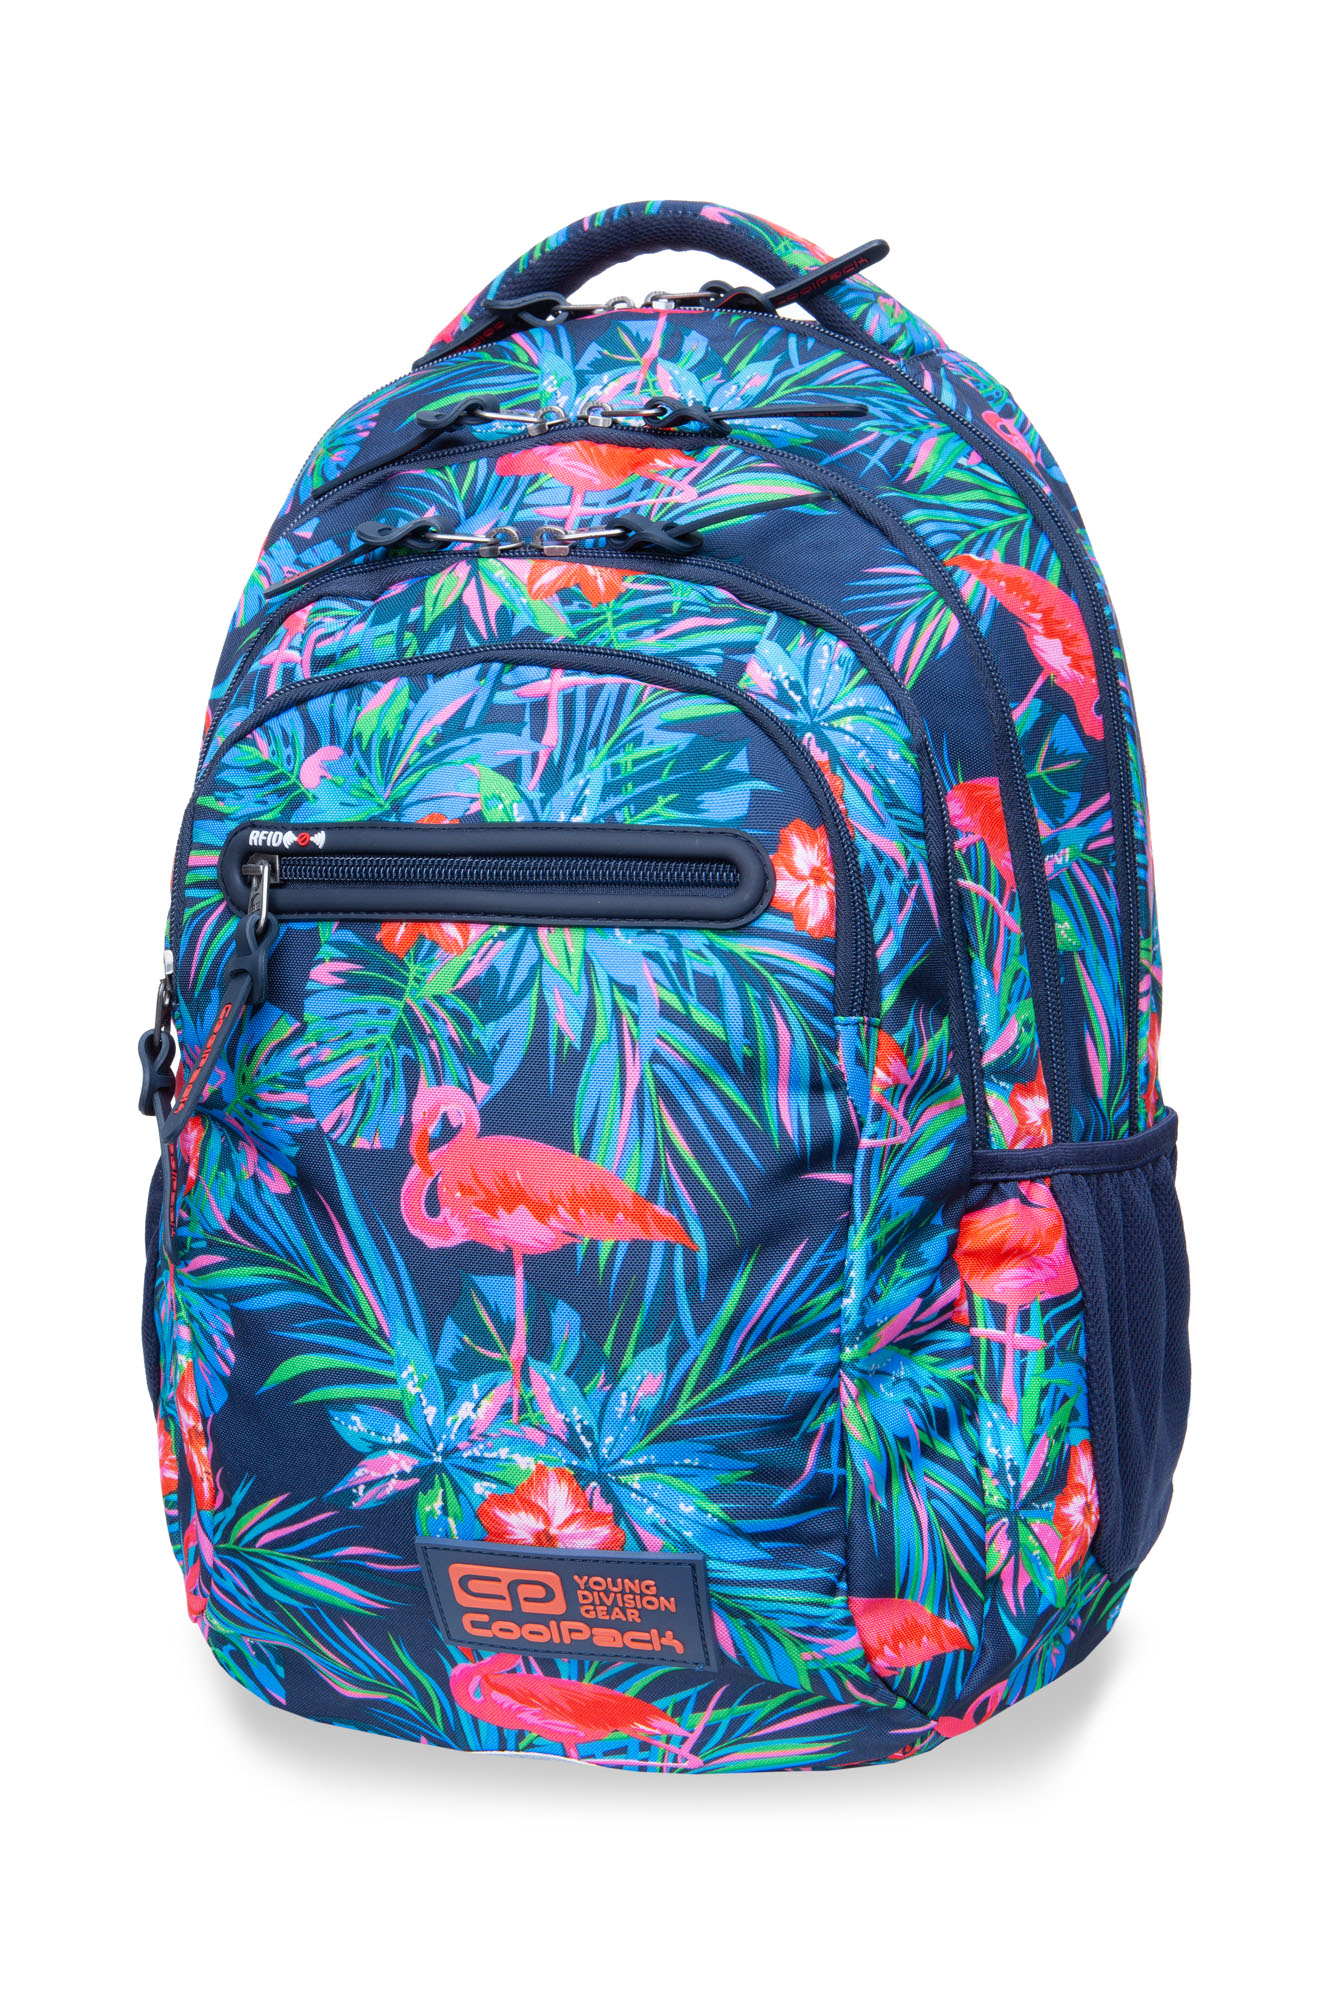 Coolpack - college tech - youth backpack - pink flamingo